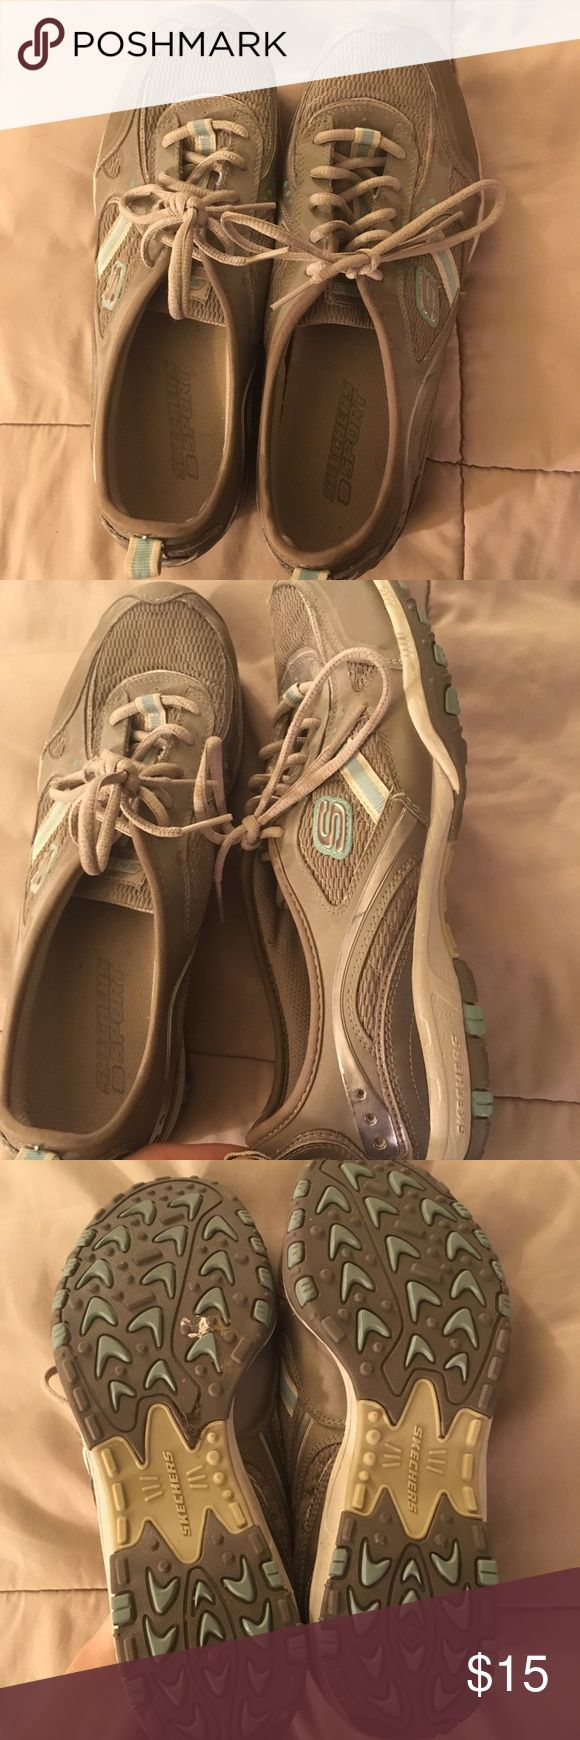 Sketchers sneakers size 10 Hardly worn (like maybe 2-4 times) sketchers. Size 10. No flaws or stains. Good shoes Skechers Shoes Sneakers